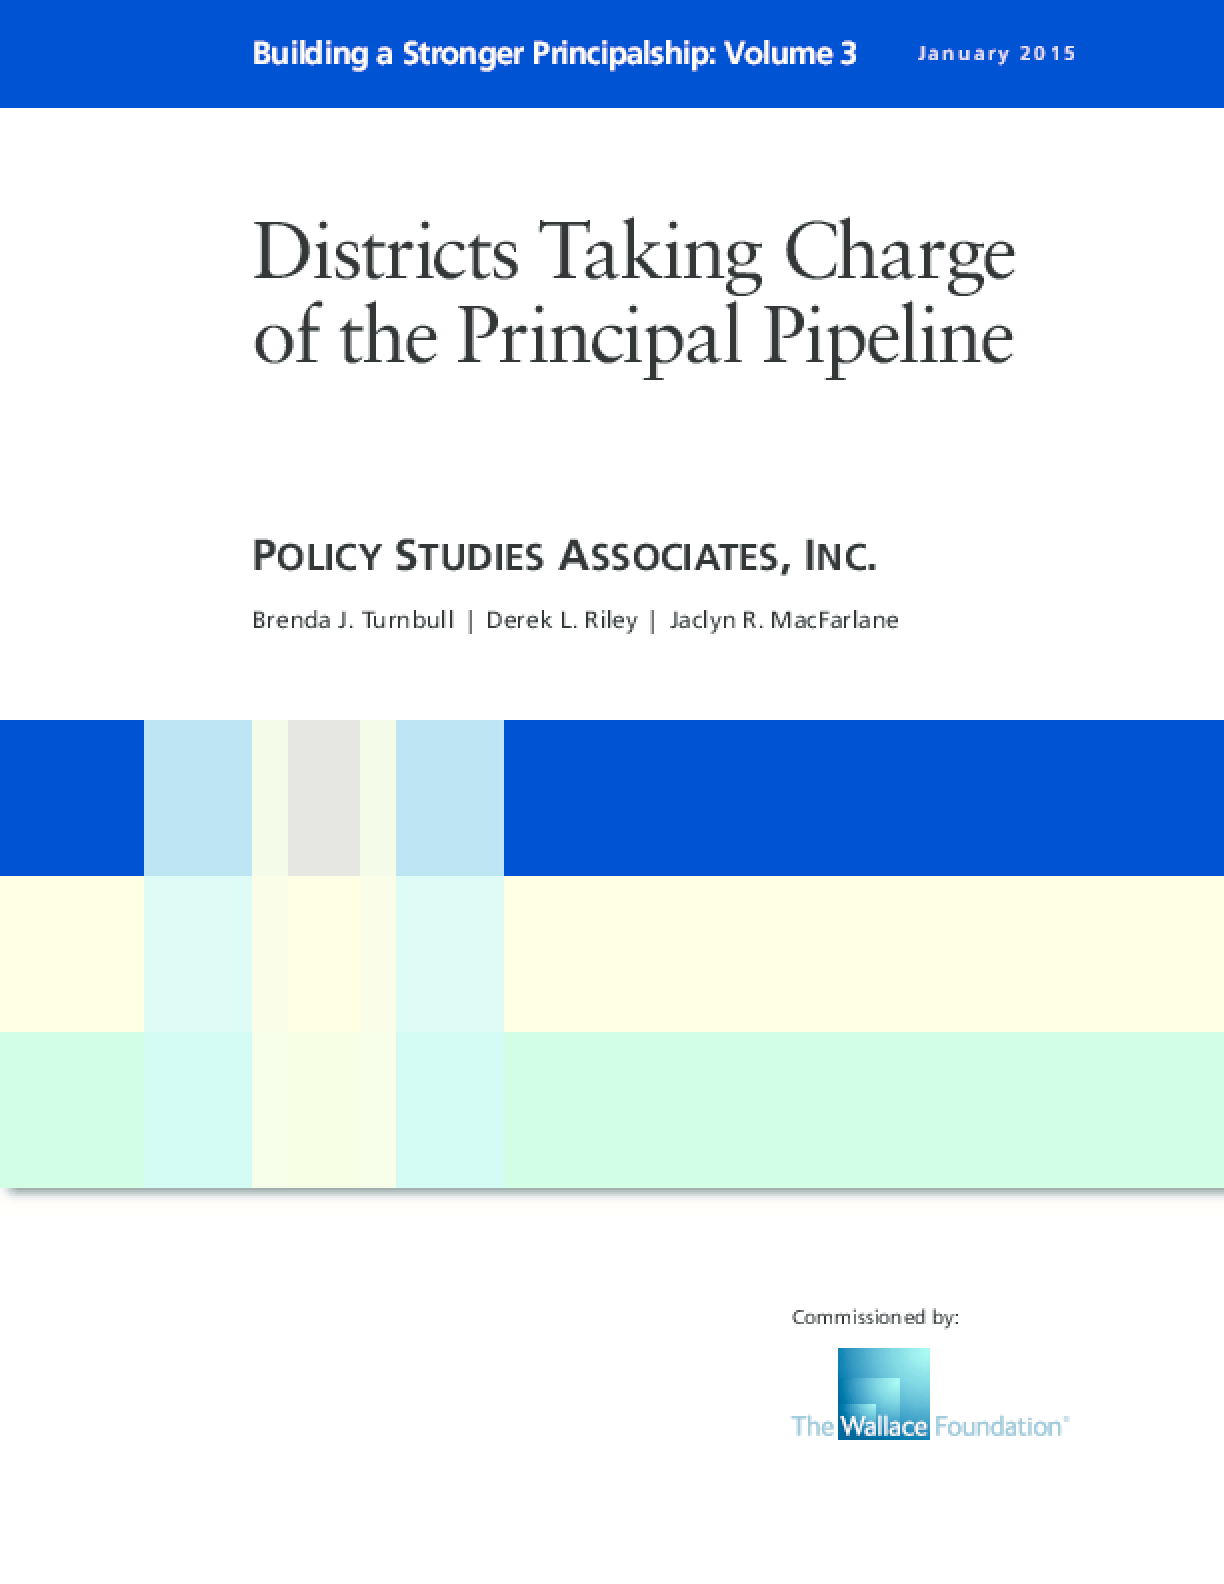 Districts Taking Charge of the Principal Pipeline